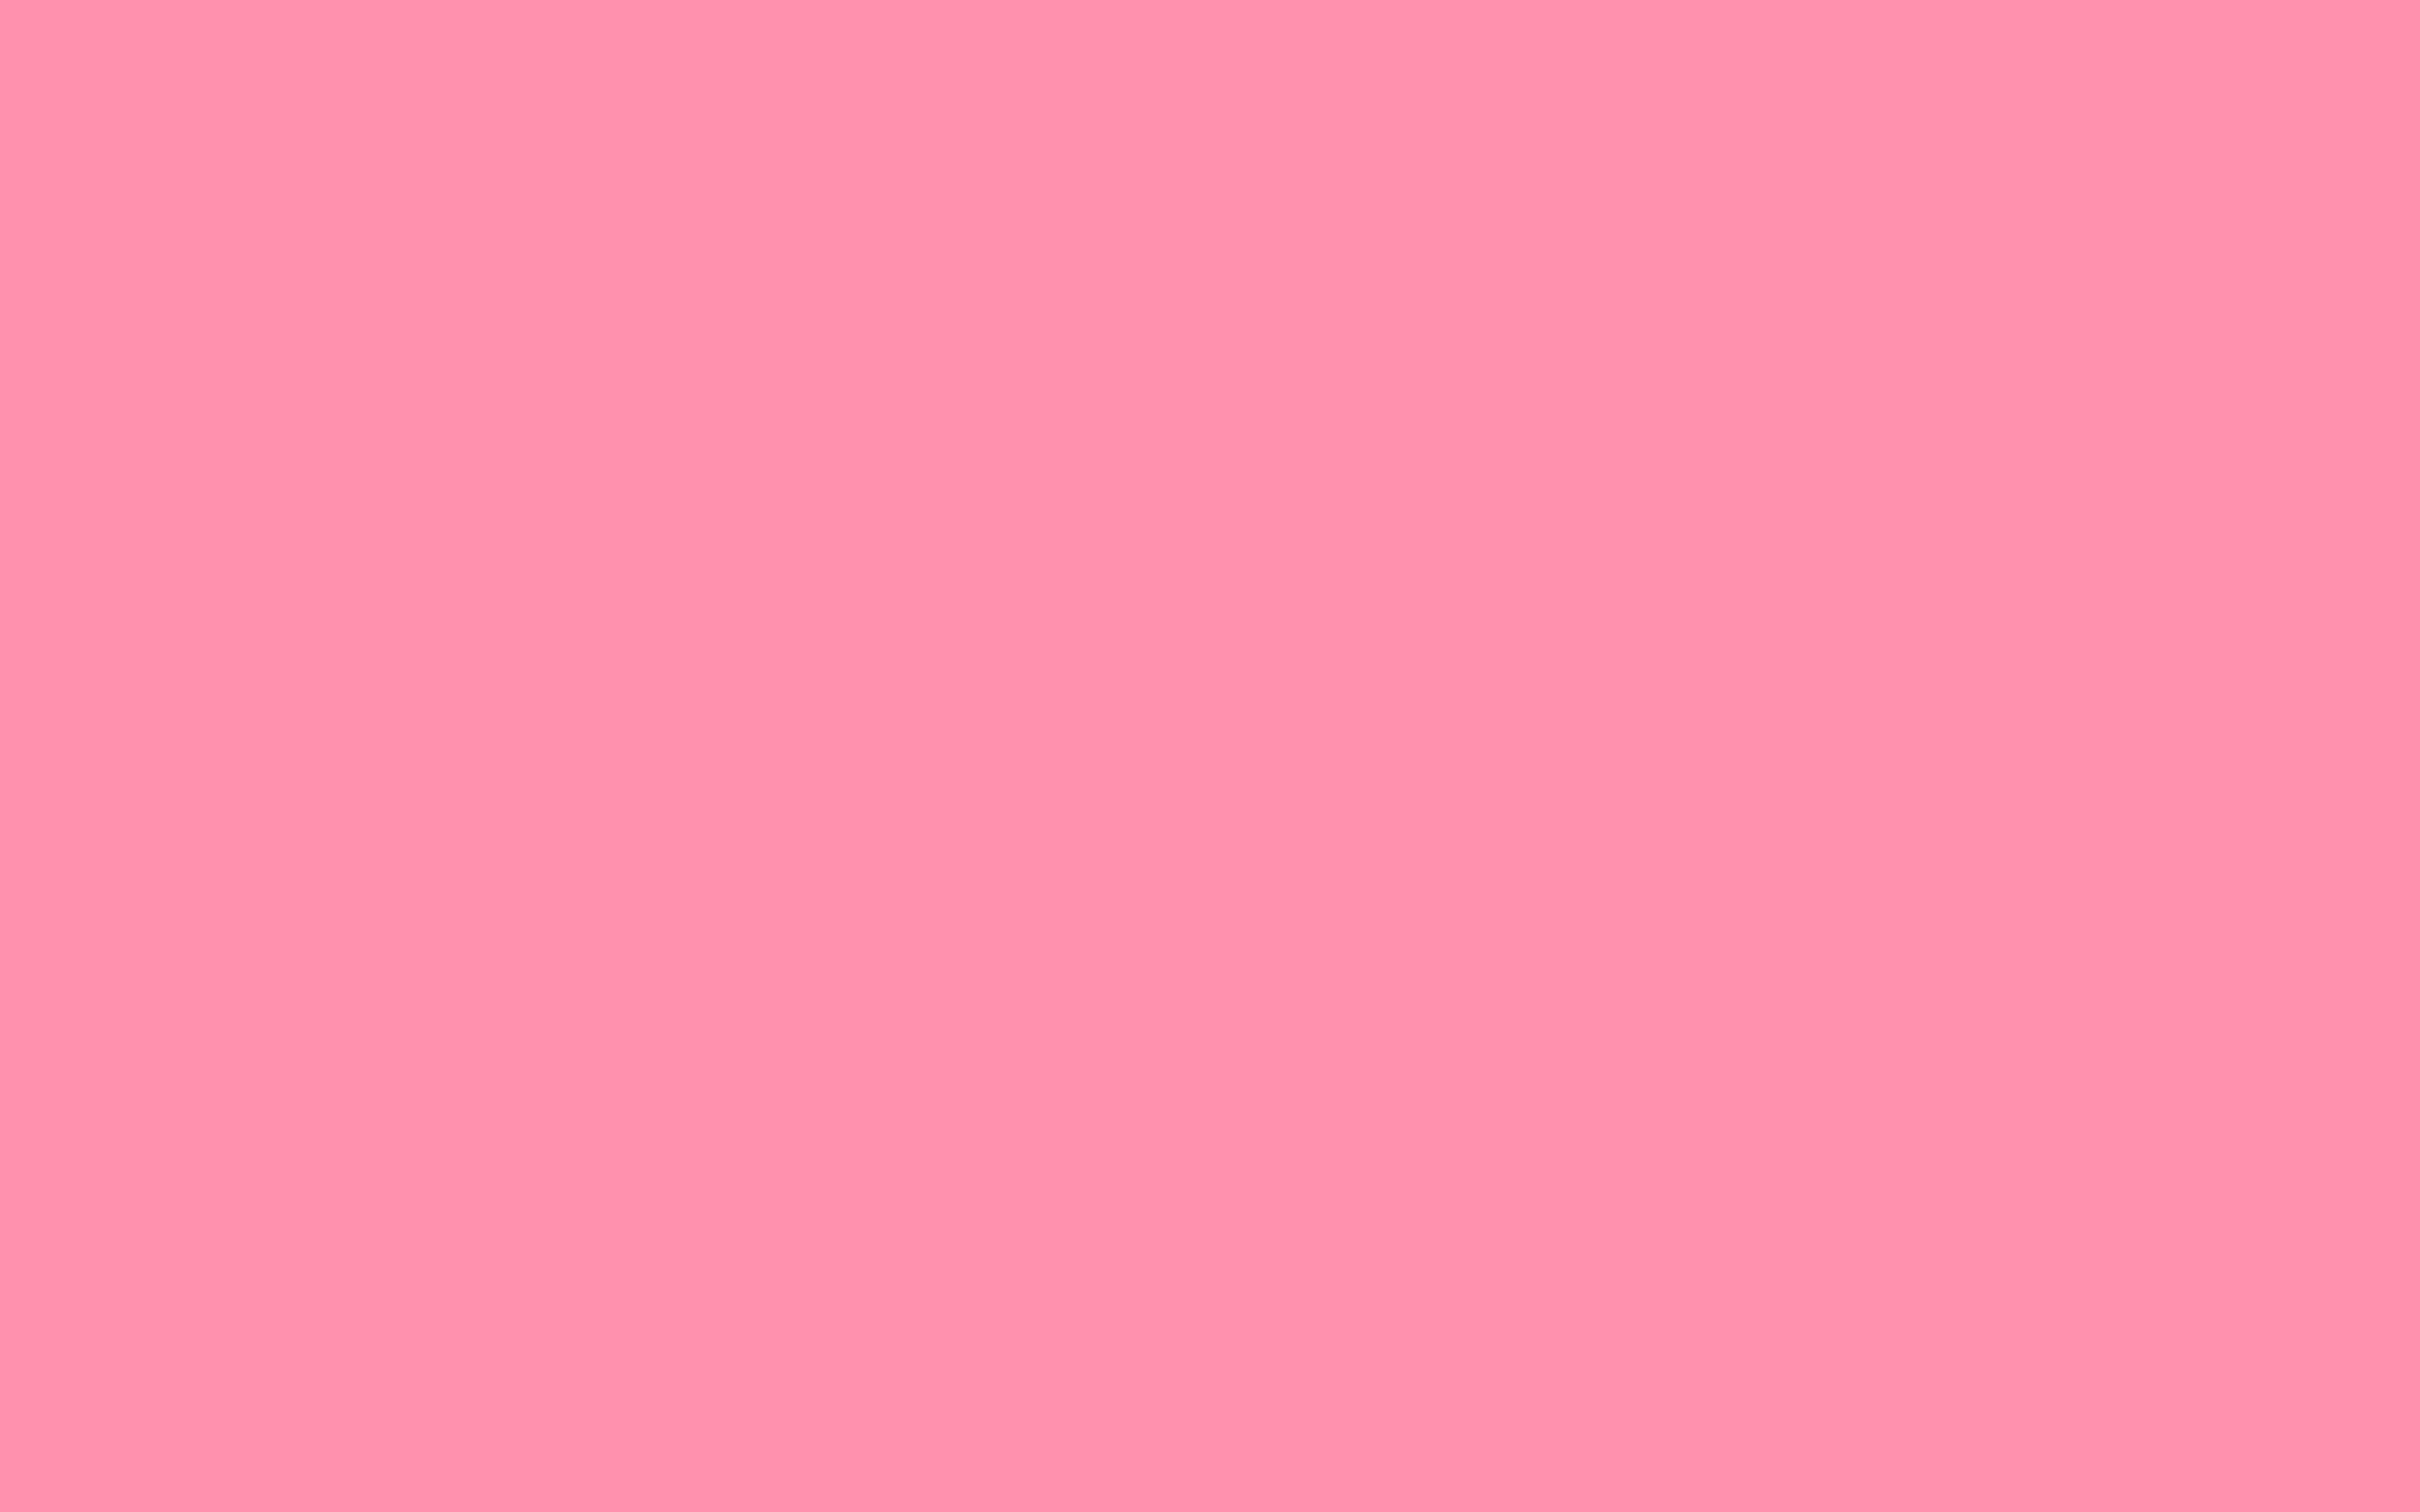 2560x1600 Baker-Miller Pink Solid Color Background